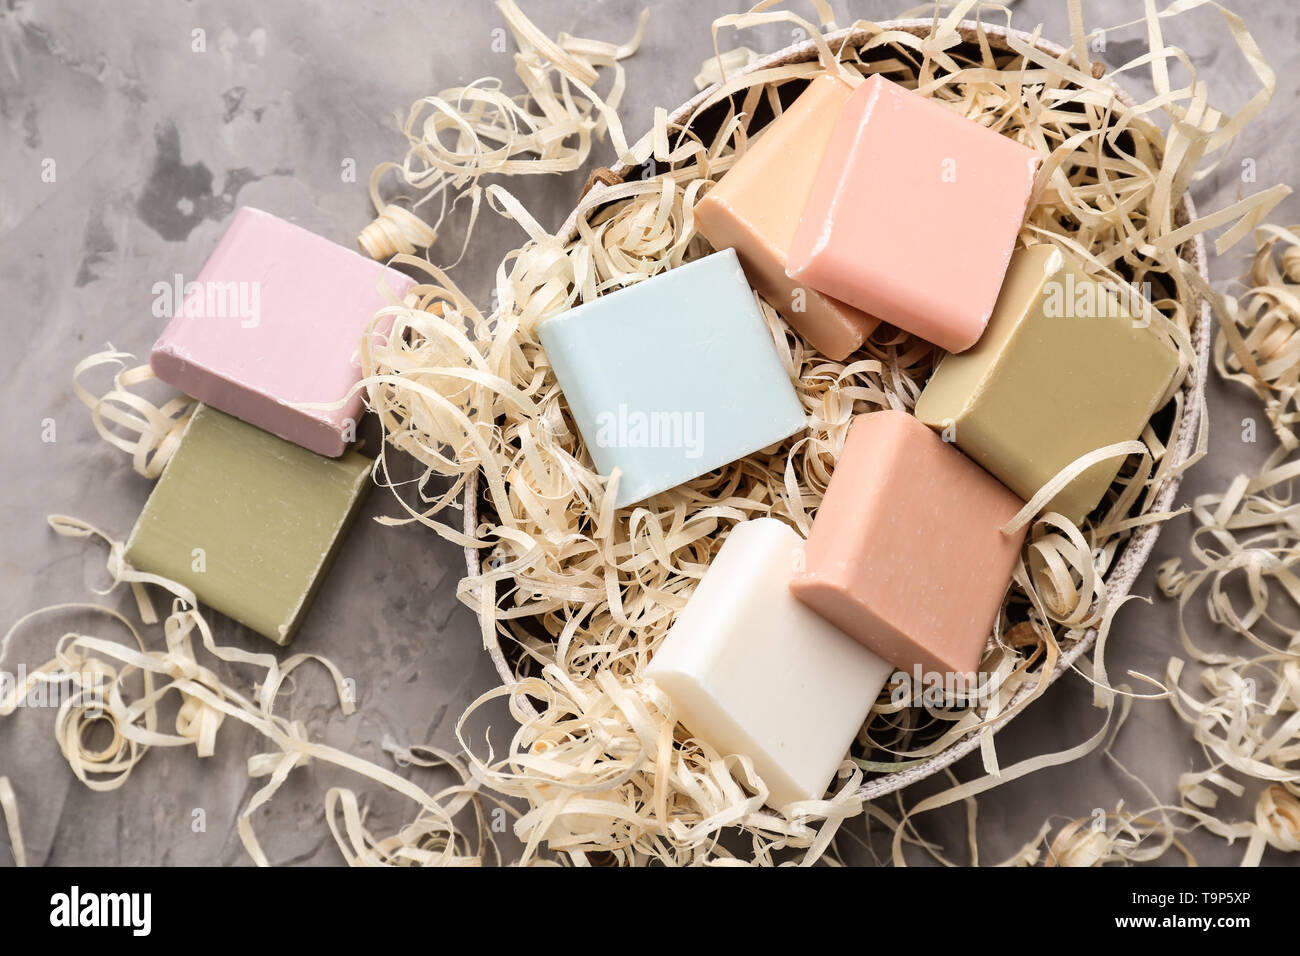 Different soap bars on table Stock Photo